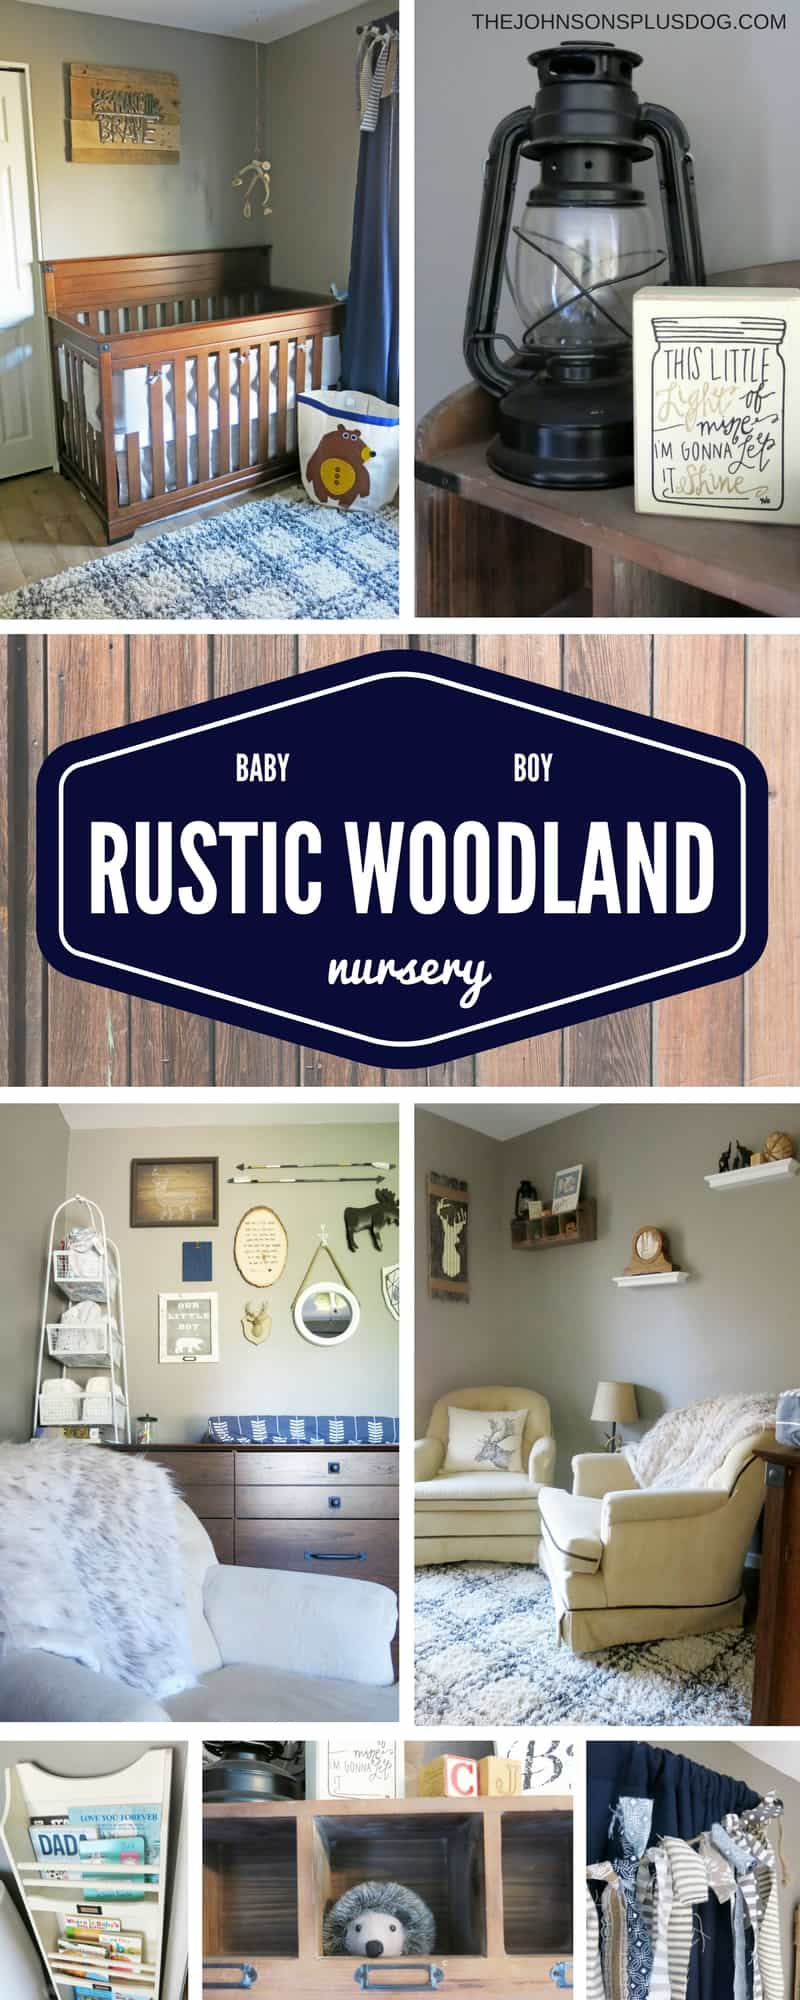 a collage of images featuring rustic nursery decor in various rooms ...with a text overlay that says... baby boy rustic woodland nursery